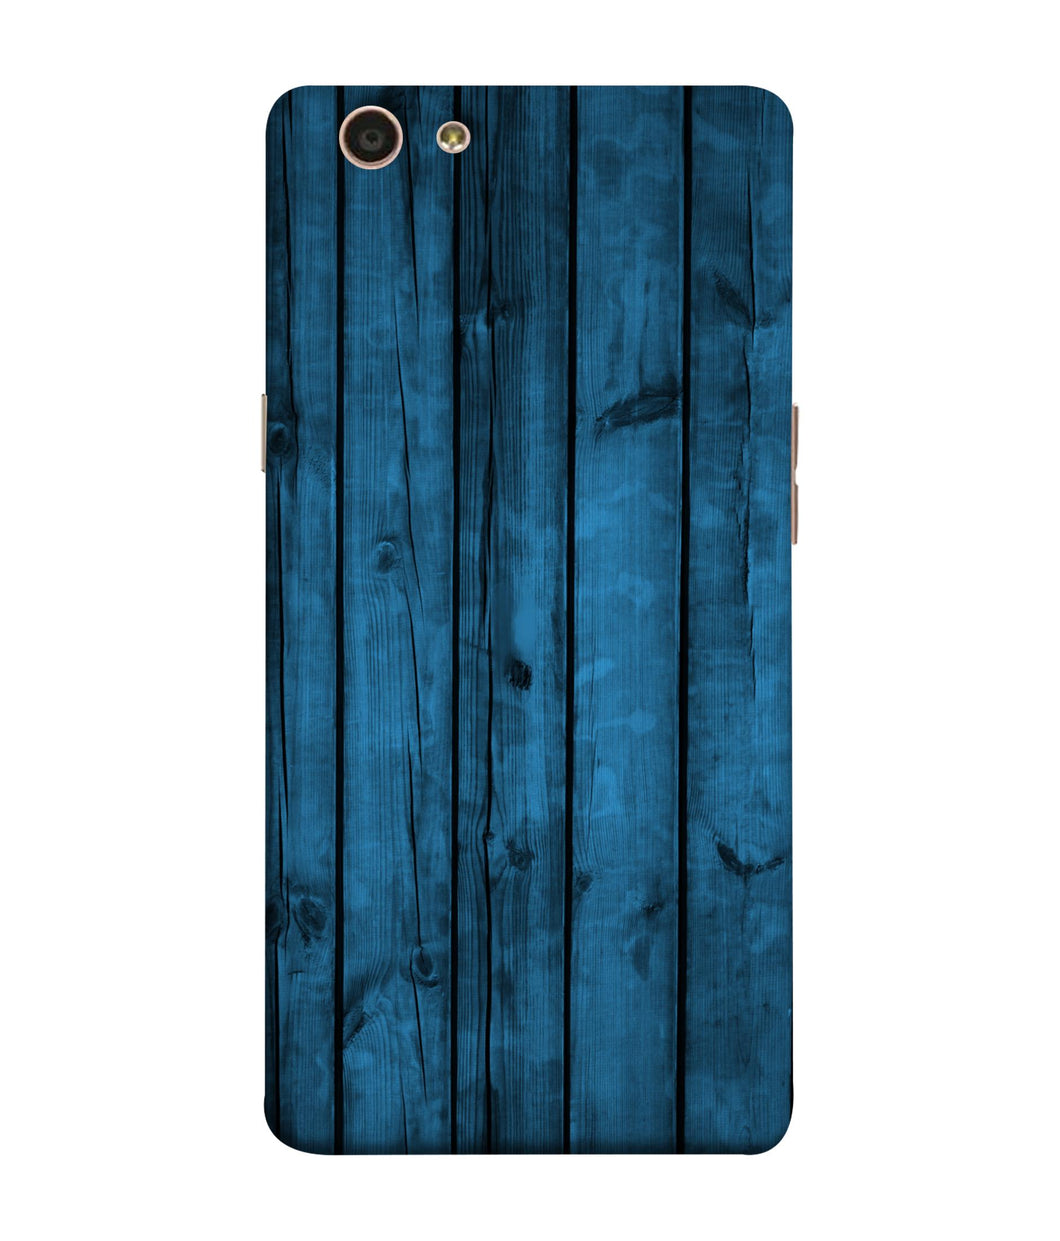 Oppo F1 S Bluewood mobile cover